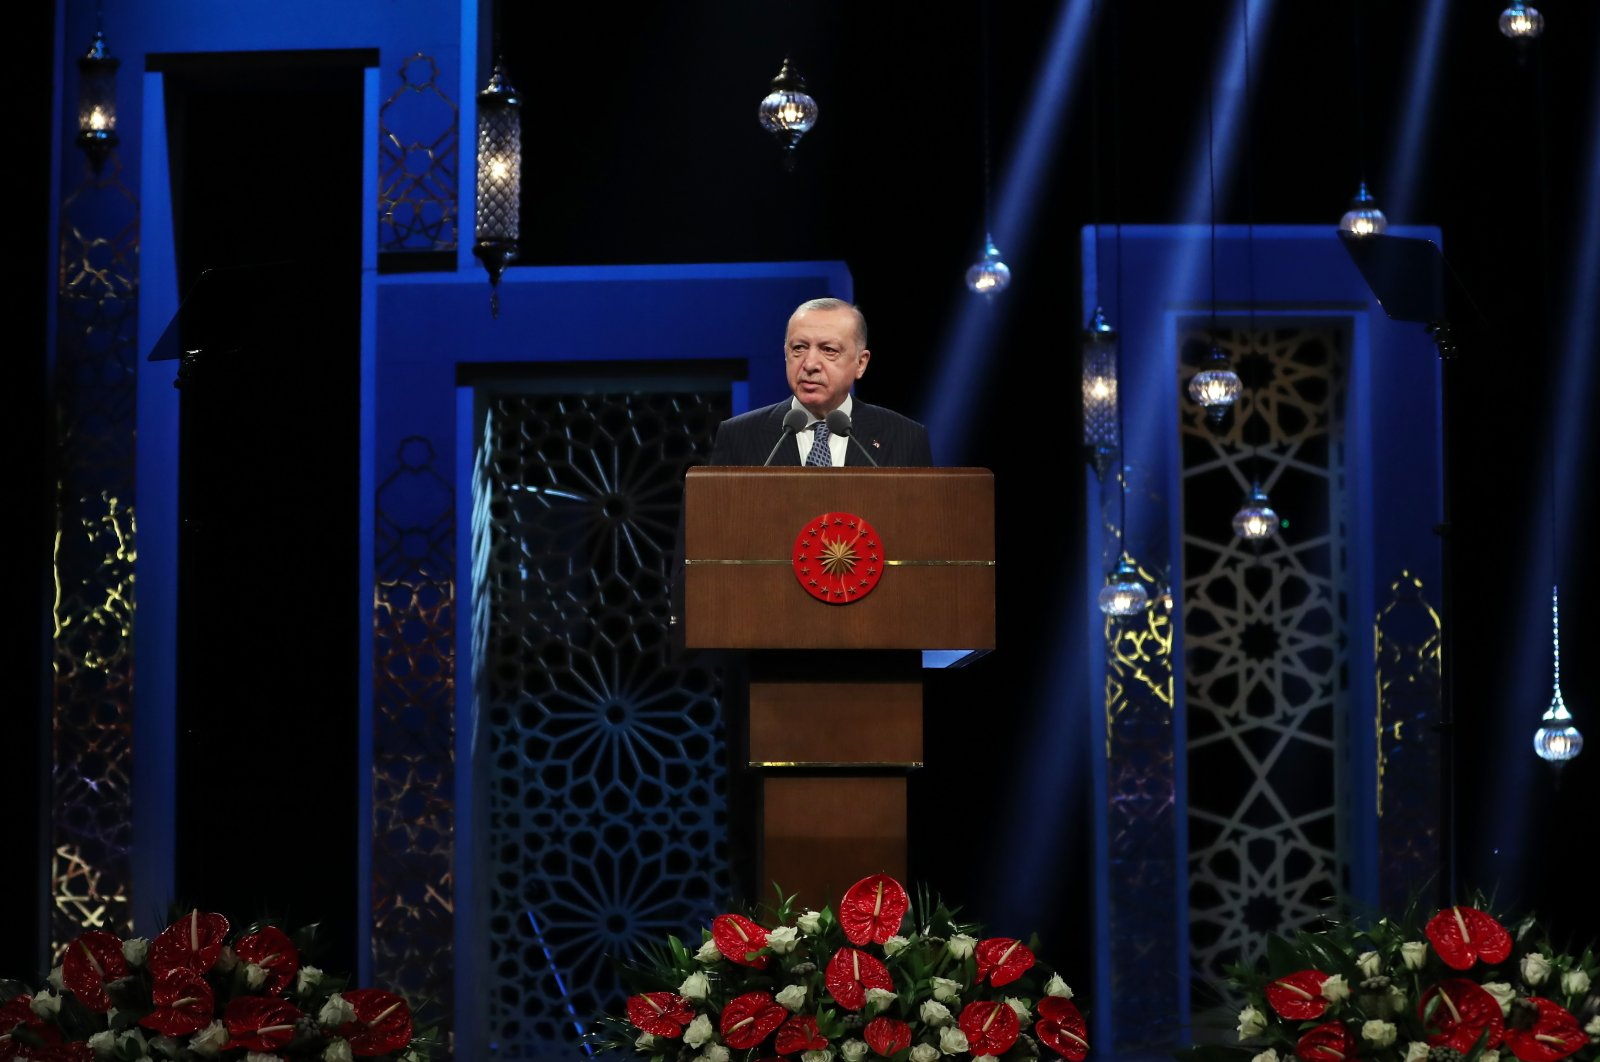 President Recep Tayyip Erdoğan speaks during a Quran reading contest organized by state-run broadcaster TRT in Ankara, Turkey, on May 12, 2021 (AA Photo)